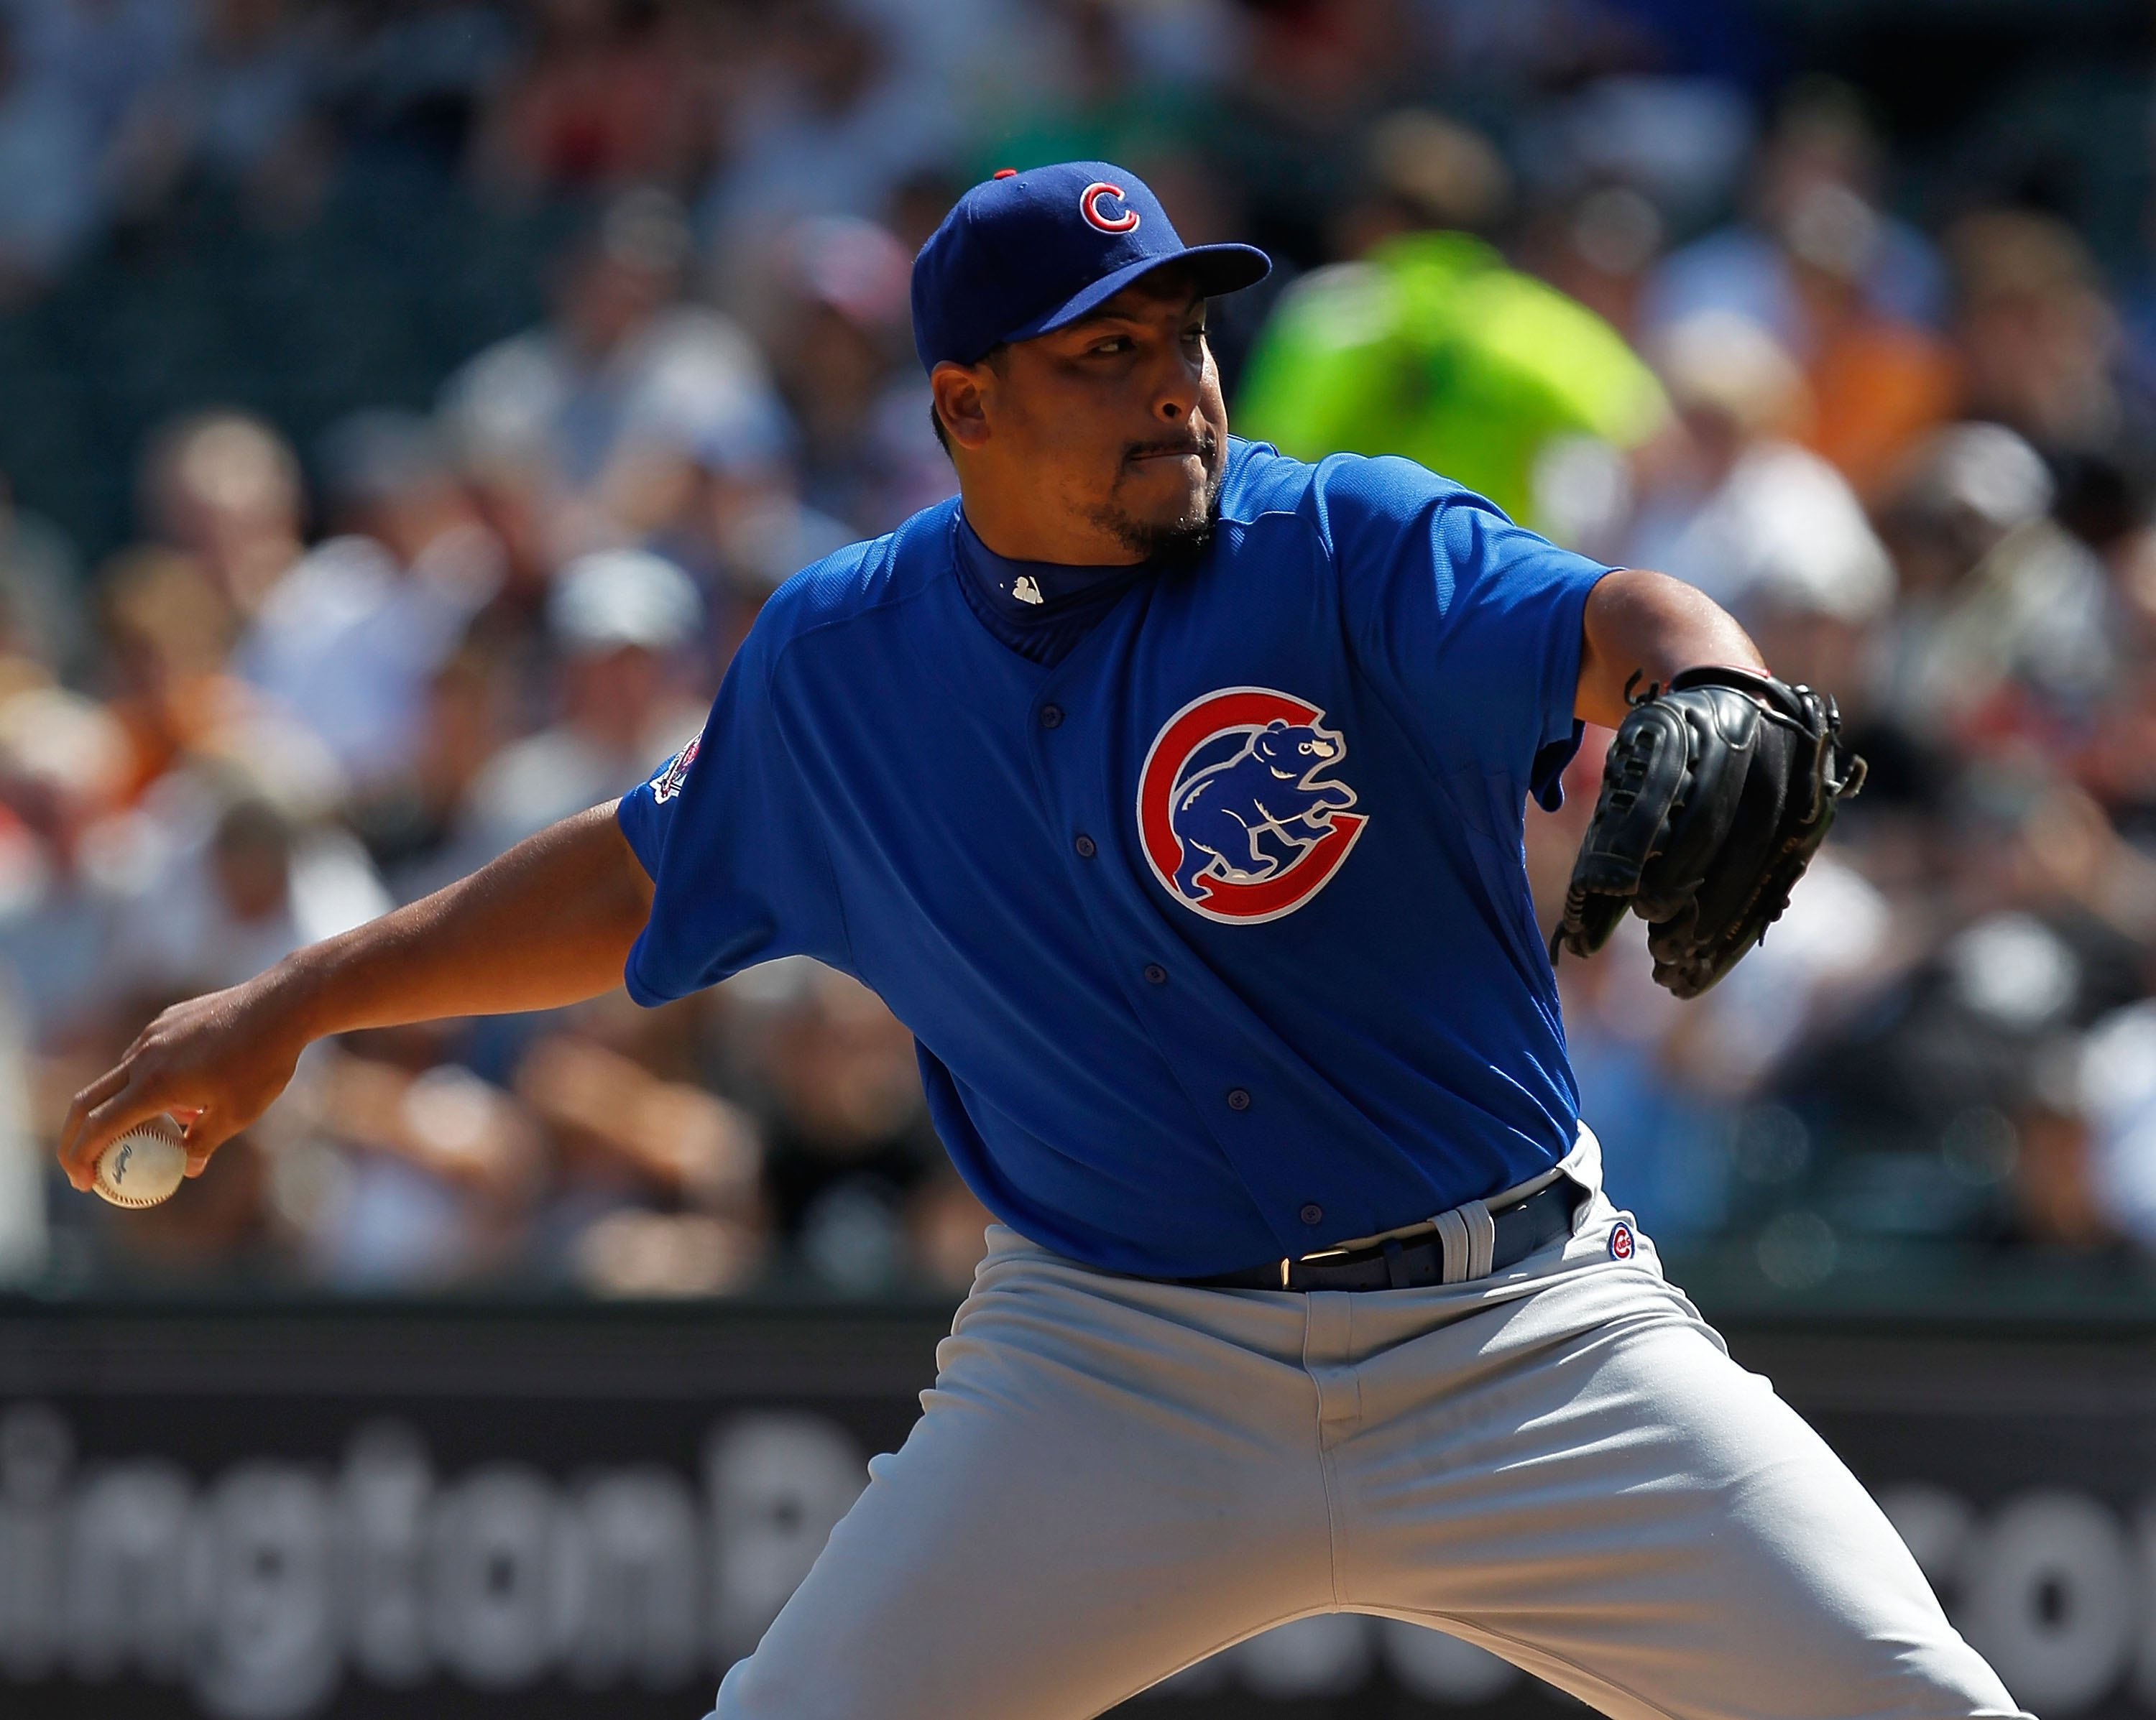 CHICAGO - JUNE 25: Starting pitcher Carlos Zambrano #38 of the Chicago Cubs throws the ball in the 1st inning to Carlos Quentin of the Chicago White Sox at U.S. Cellular Field on June 25, 2010 in Chicago, Illinois. Zambrano was suspended indefinitely by t